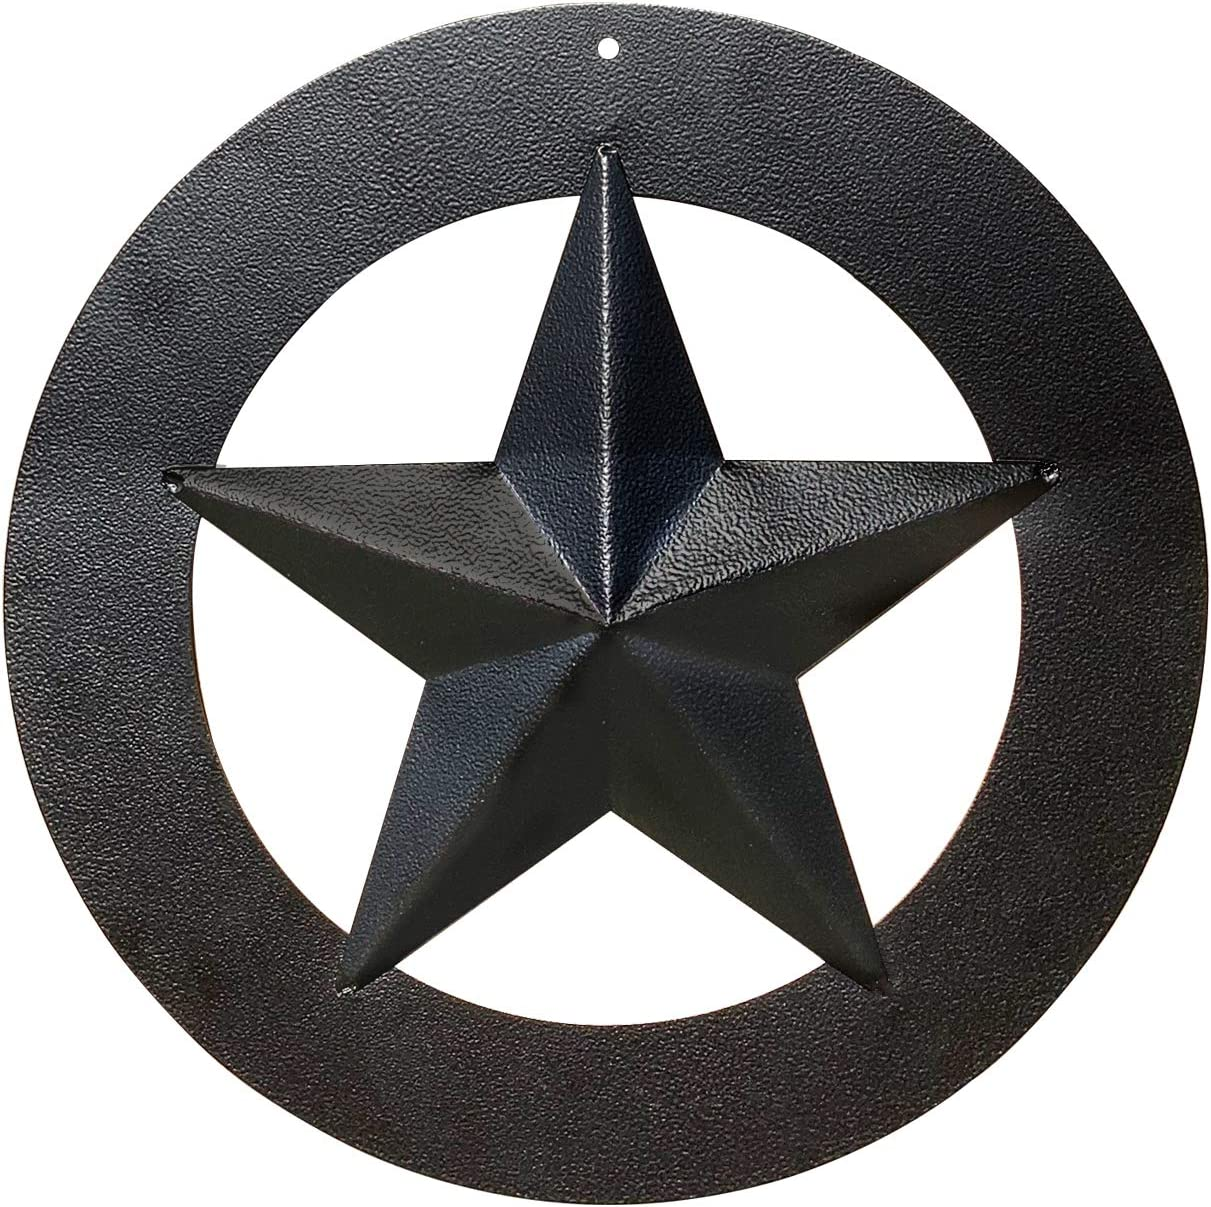 Black Metal Wall Star – Barn Star, Metal Stars for Outside or Inside, Texas Star, Art Rustic Vintage Western Country Farmhouse Iron Wall Décor for House (12